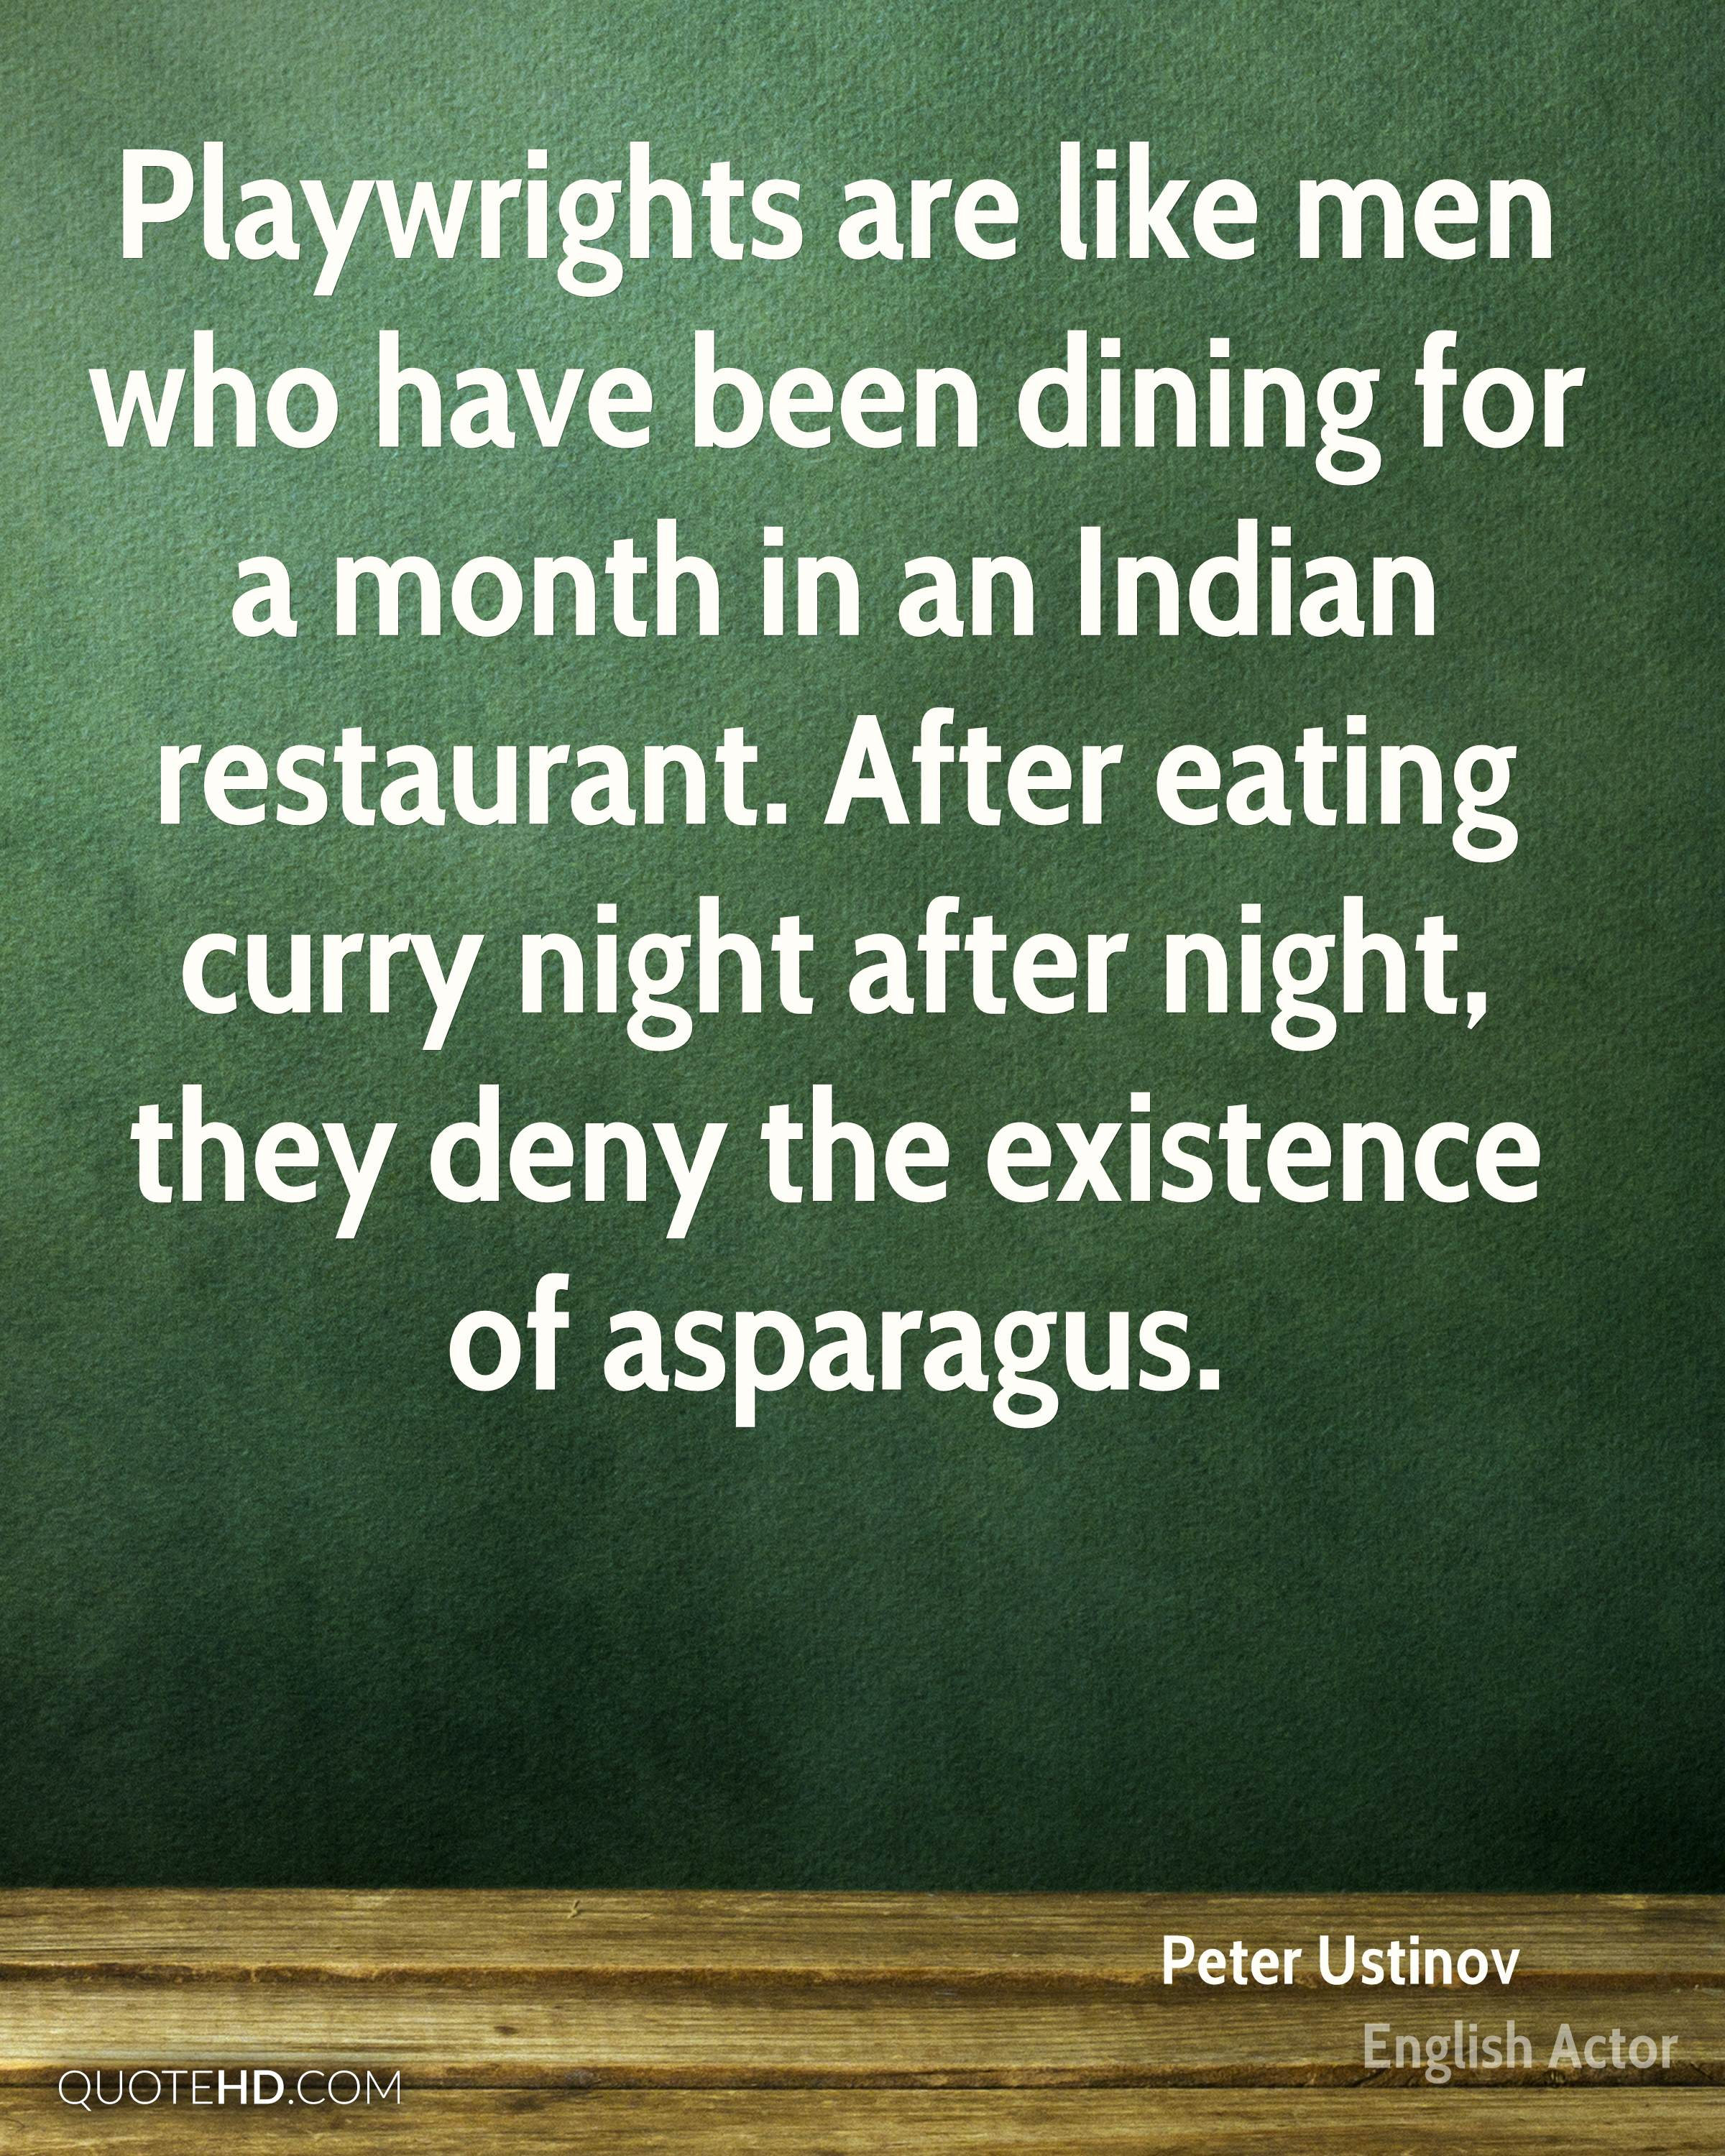 Playwrights are like men who have been dining for a month in an Indian restaurant. After eating curry night after night, they deny the existence of asparagus.